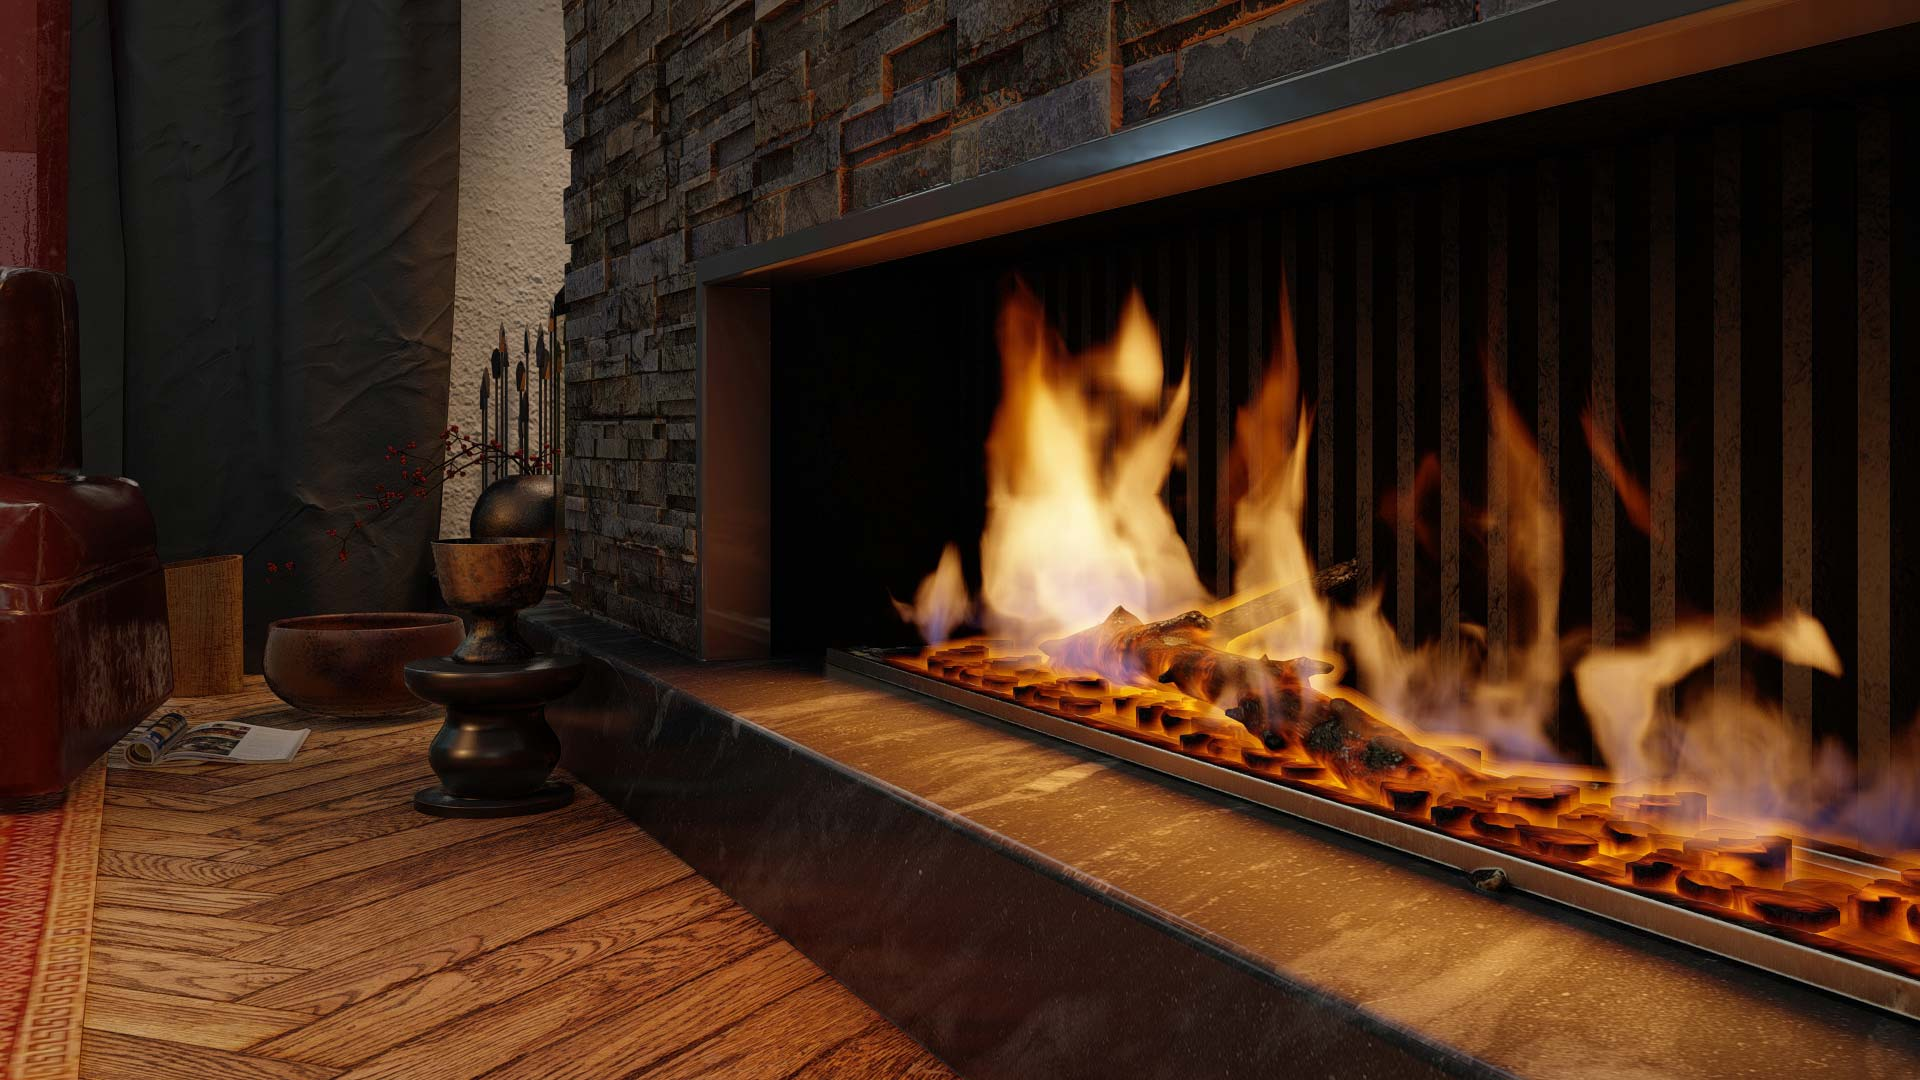 2 Fireplace iter4 fireSharp  00372 - Lumion 11 is available now